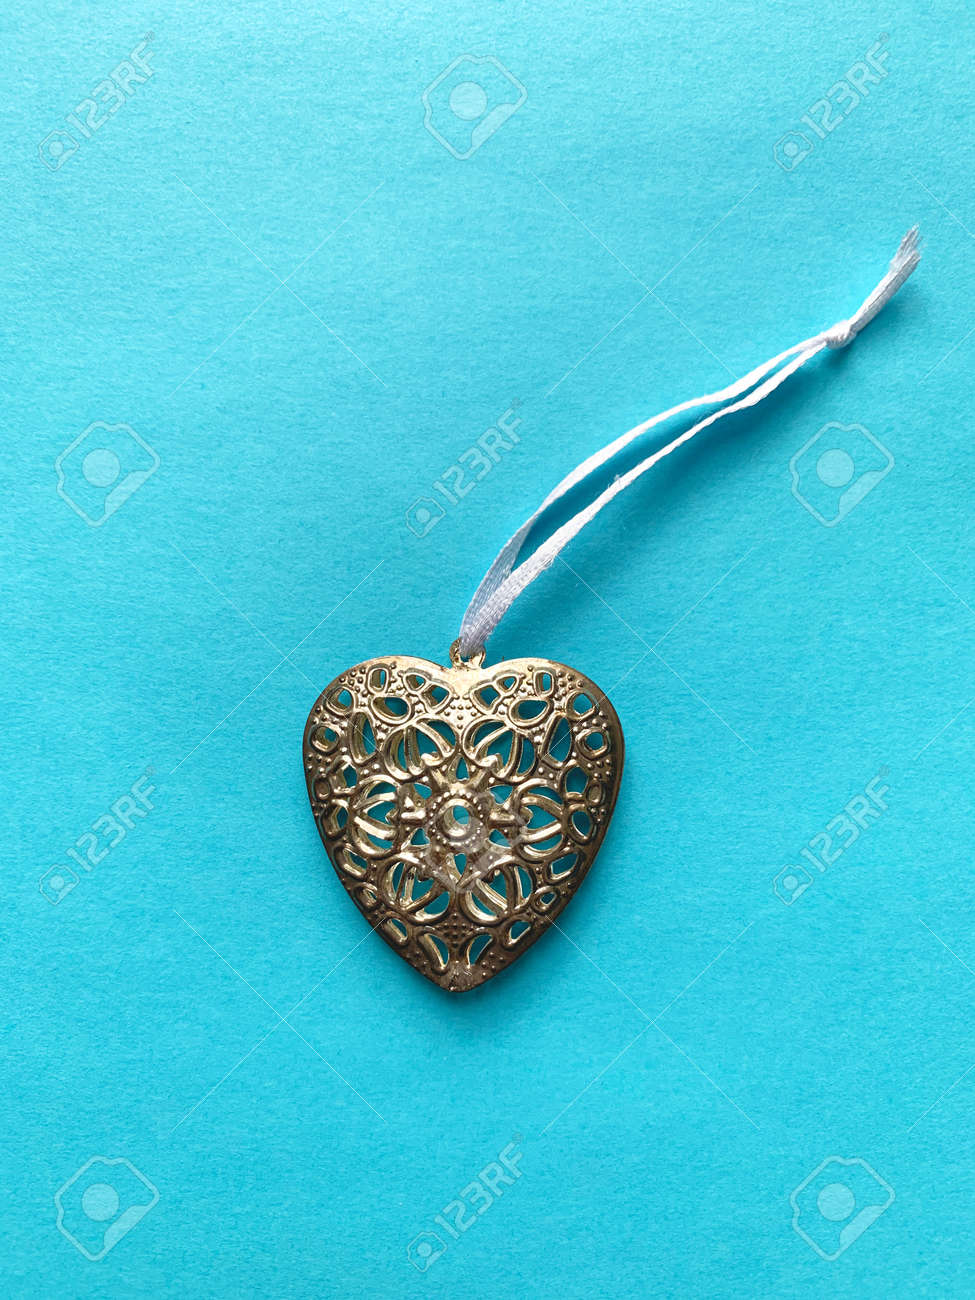 Metal heart pendant on a blue background - 169603111